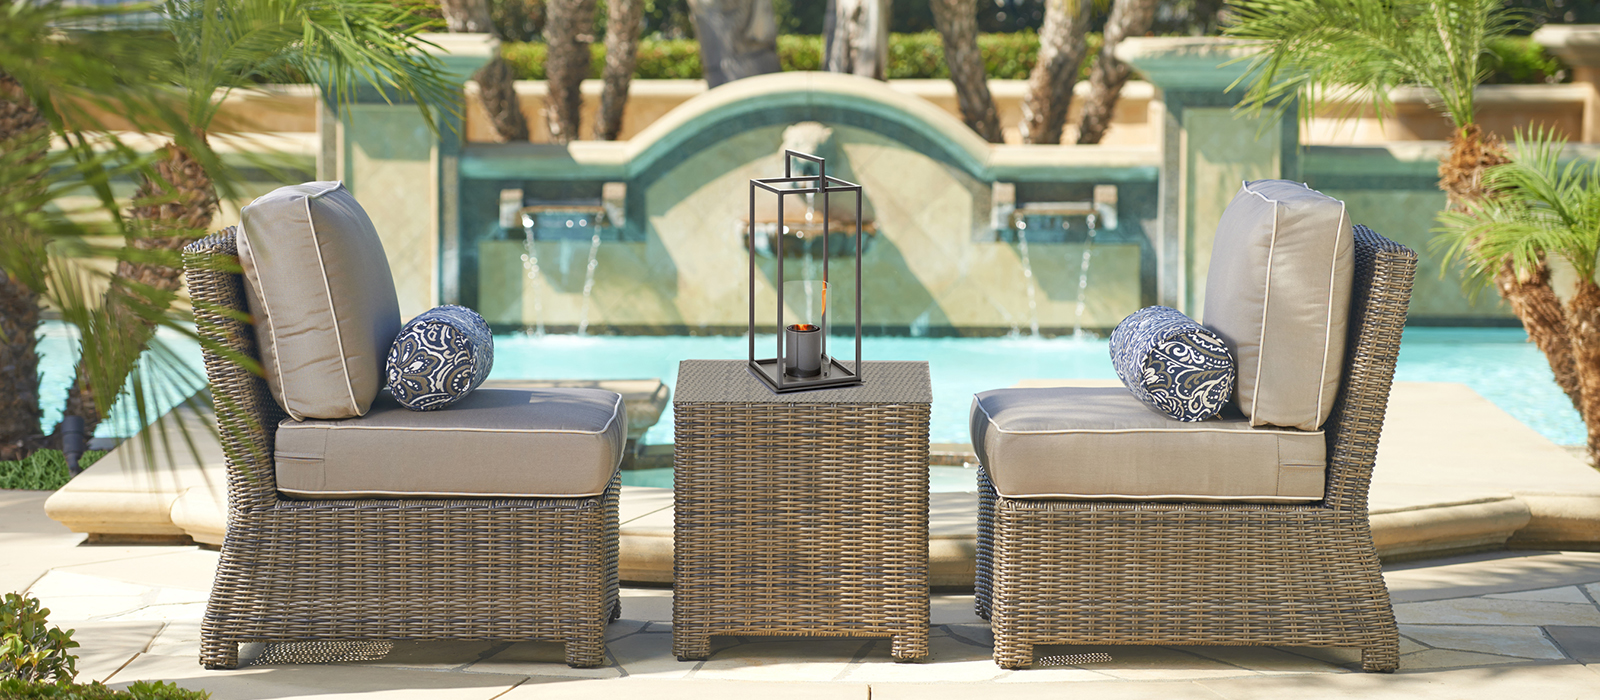 Genial Sunshine Wicker And Design   Coastal And Tropical Quality Furniture